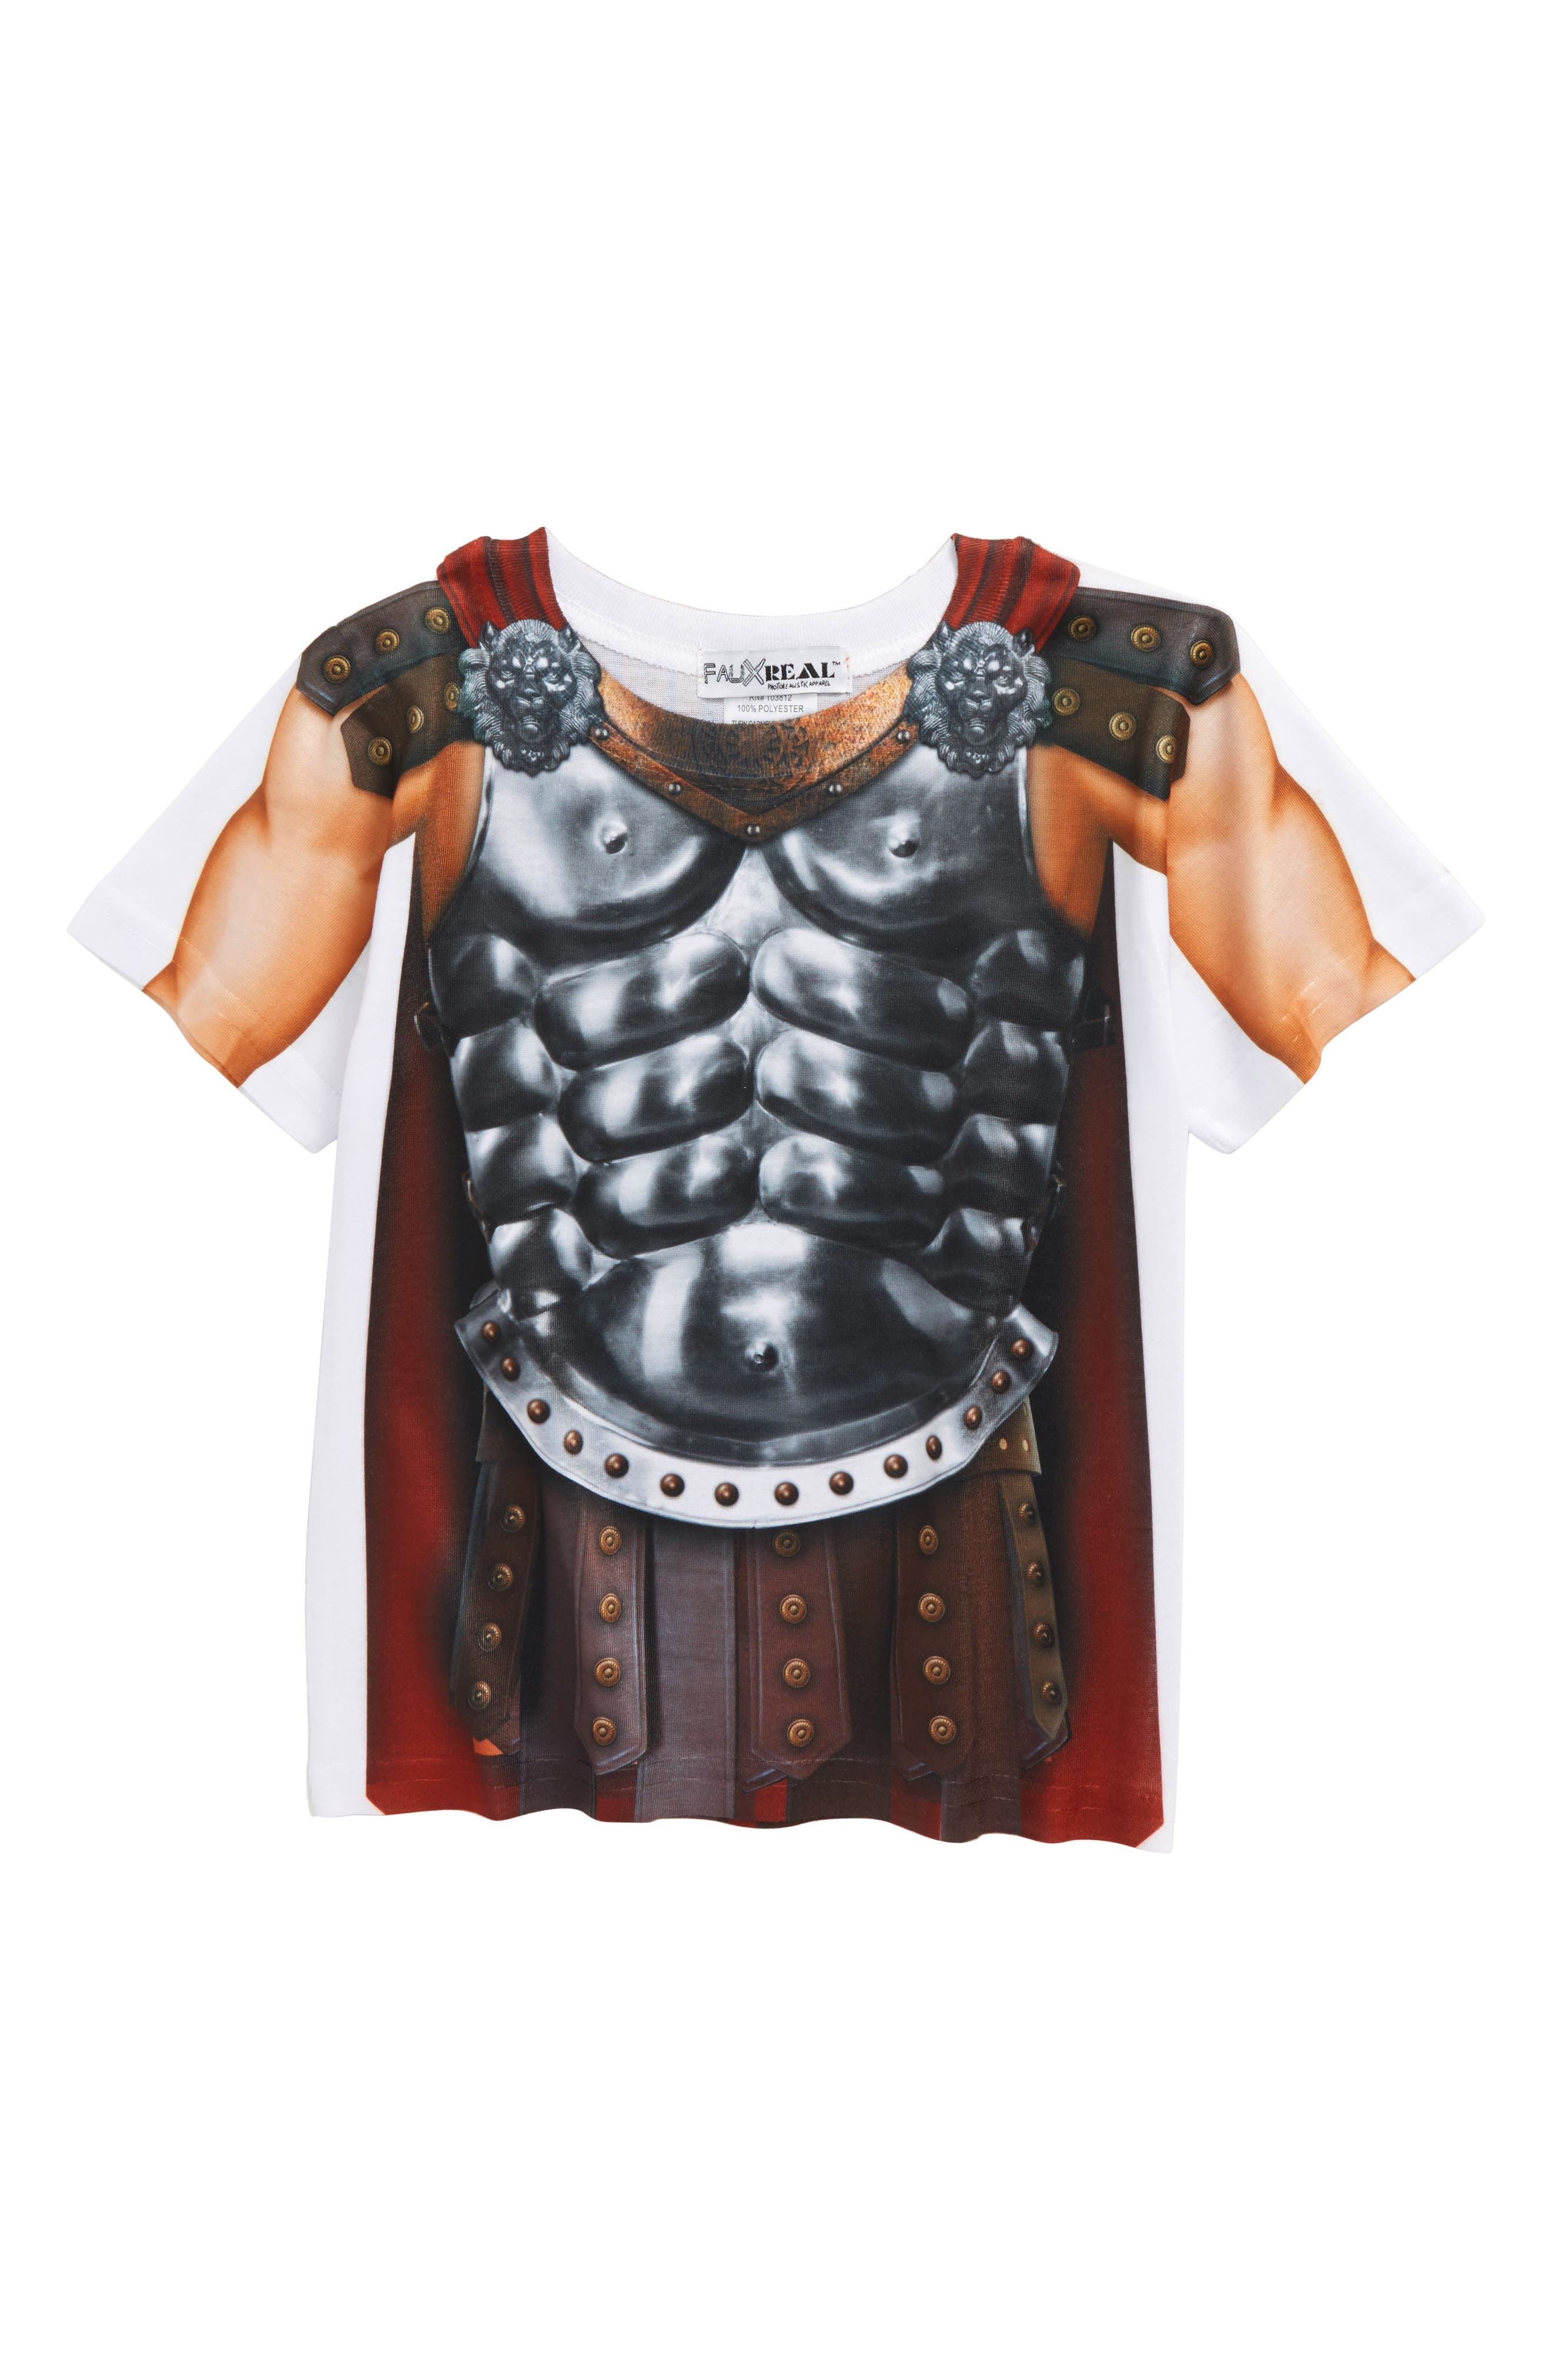 Alternate Image 1 Selected - Faux Real Gladiator Screenprint T-Shirt (Toddler Boys)